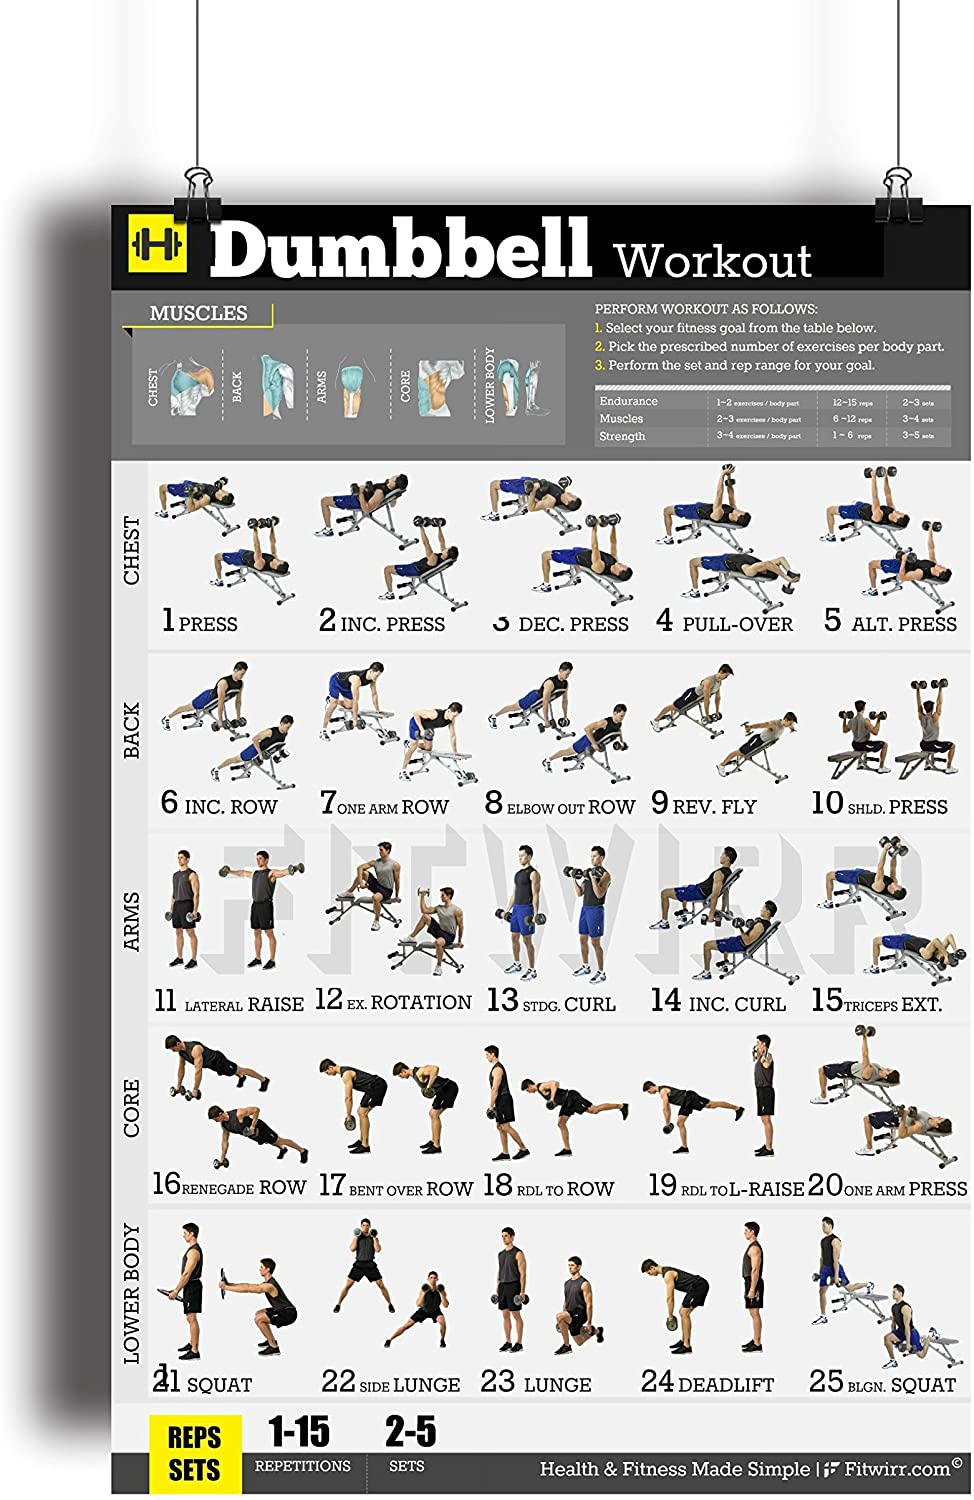 Amazon Com Dumbbell Workout Exercise Poster Laminated Home Gym Fitness Workouts For Men Build Muscles Burn Fat Lose Weight Strength Training Workout Fat Loss Bodybuilding Guide 18 X24 Sports Outdoors